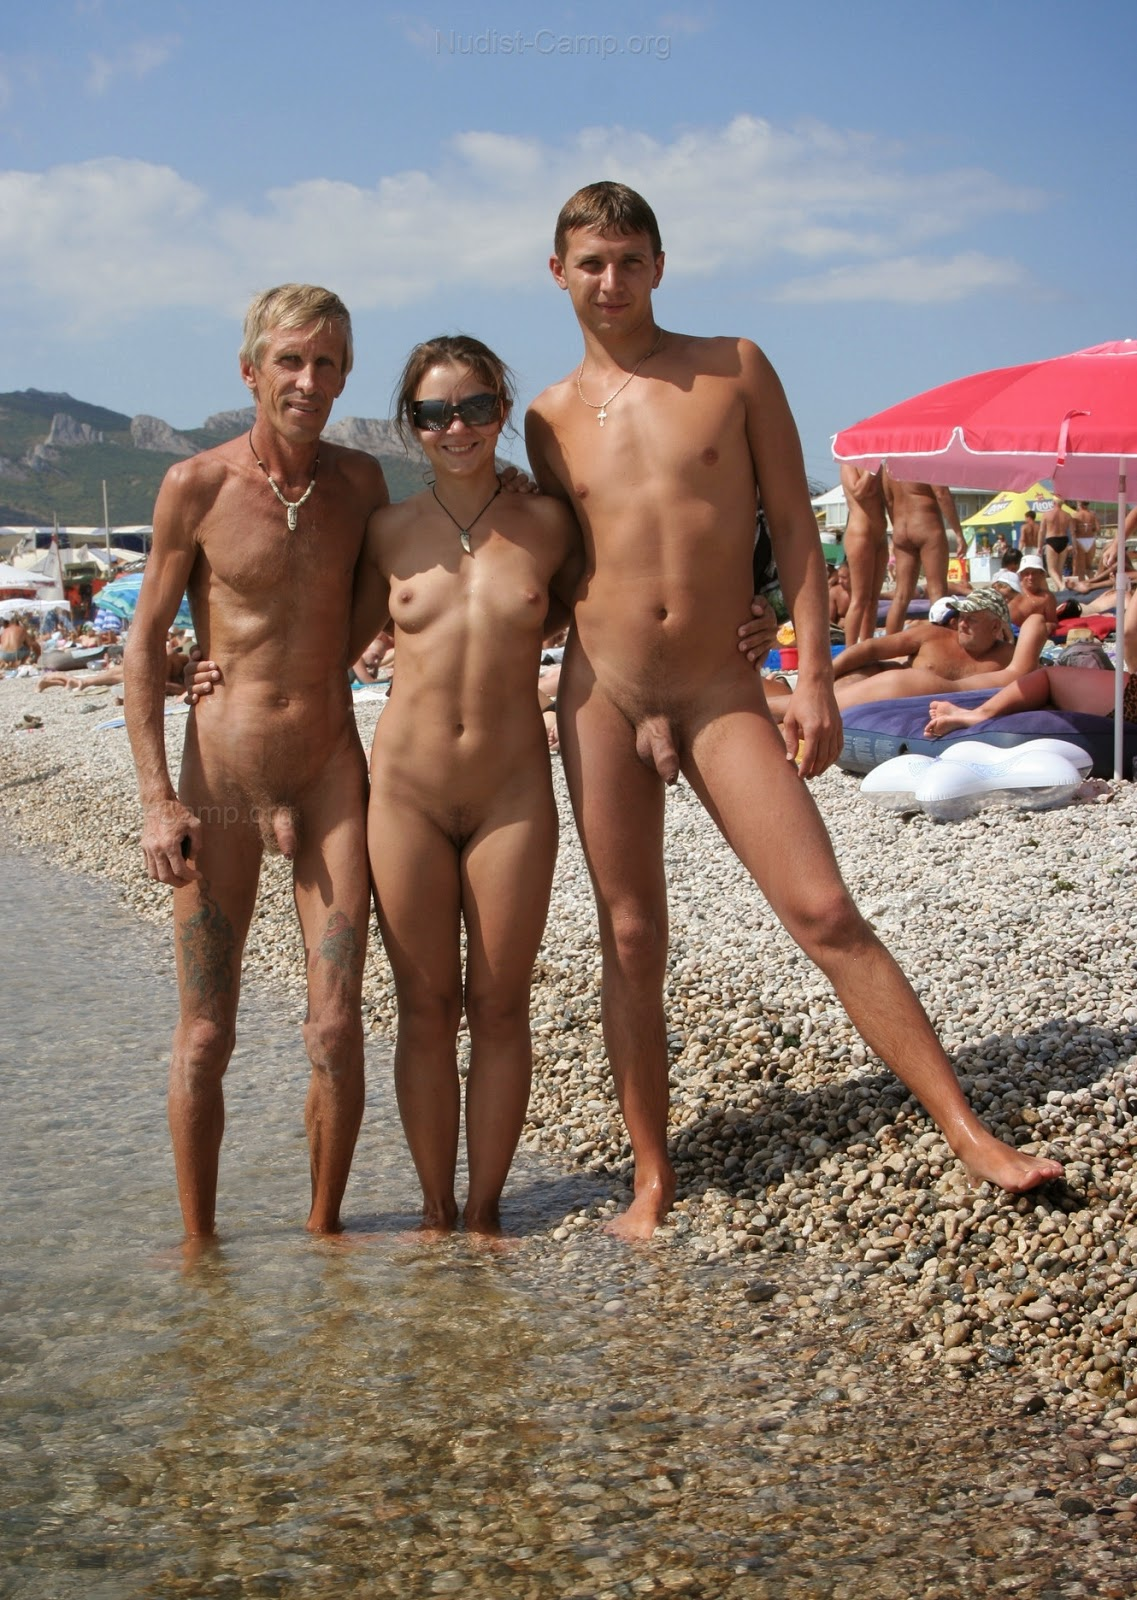 Excellent message Nudist family beach